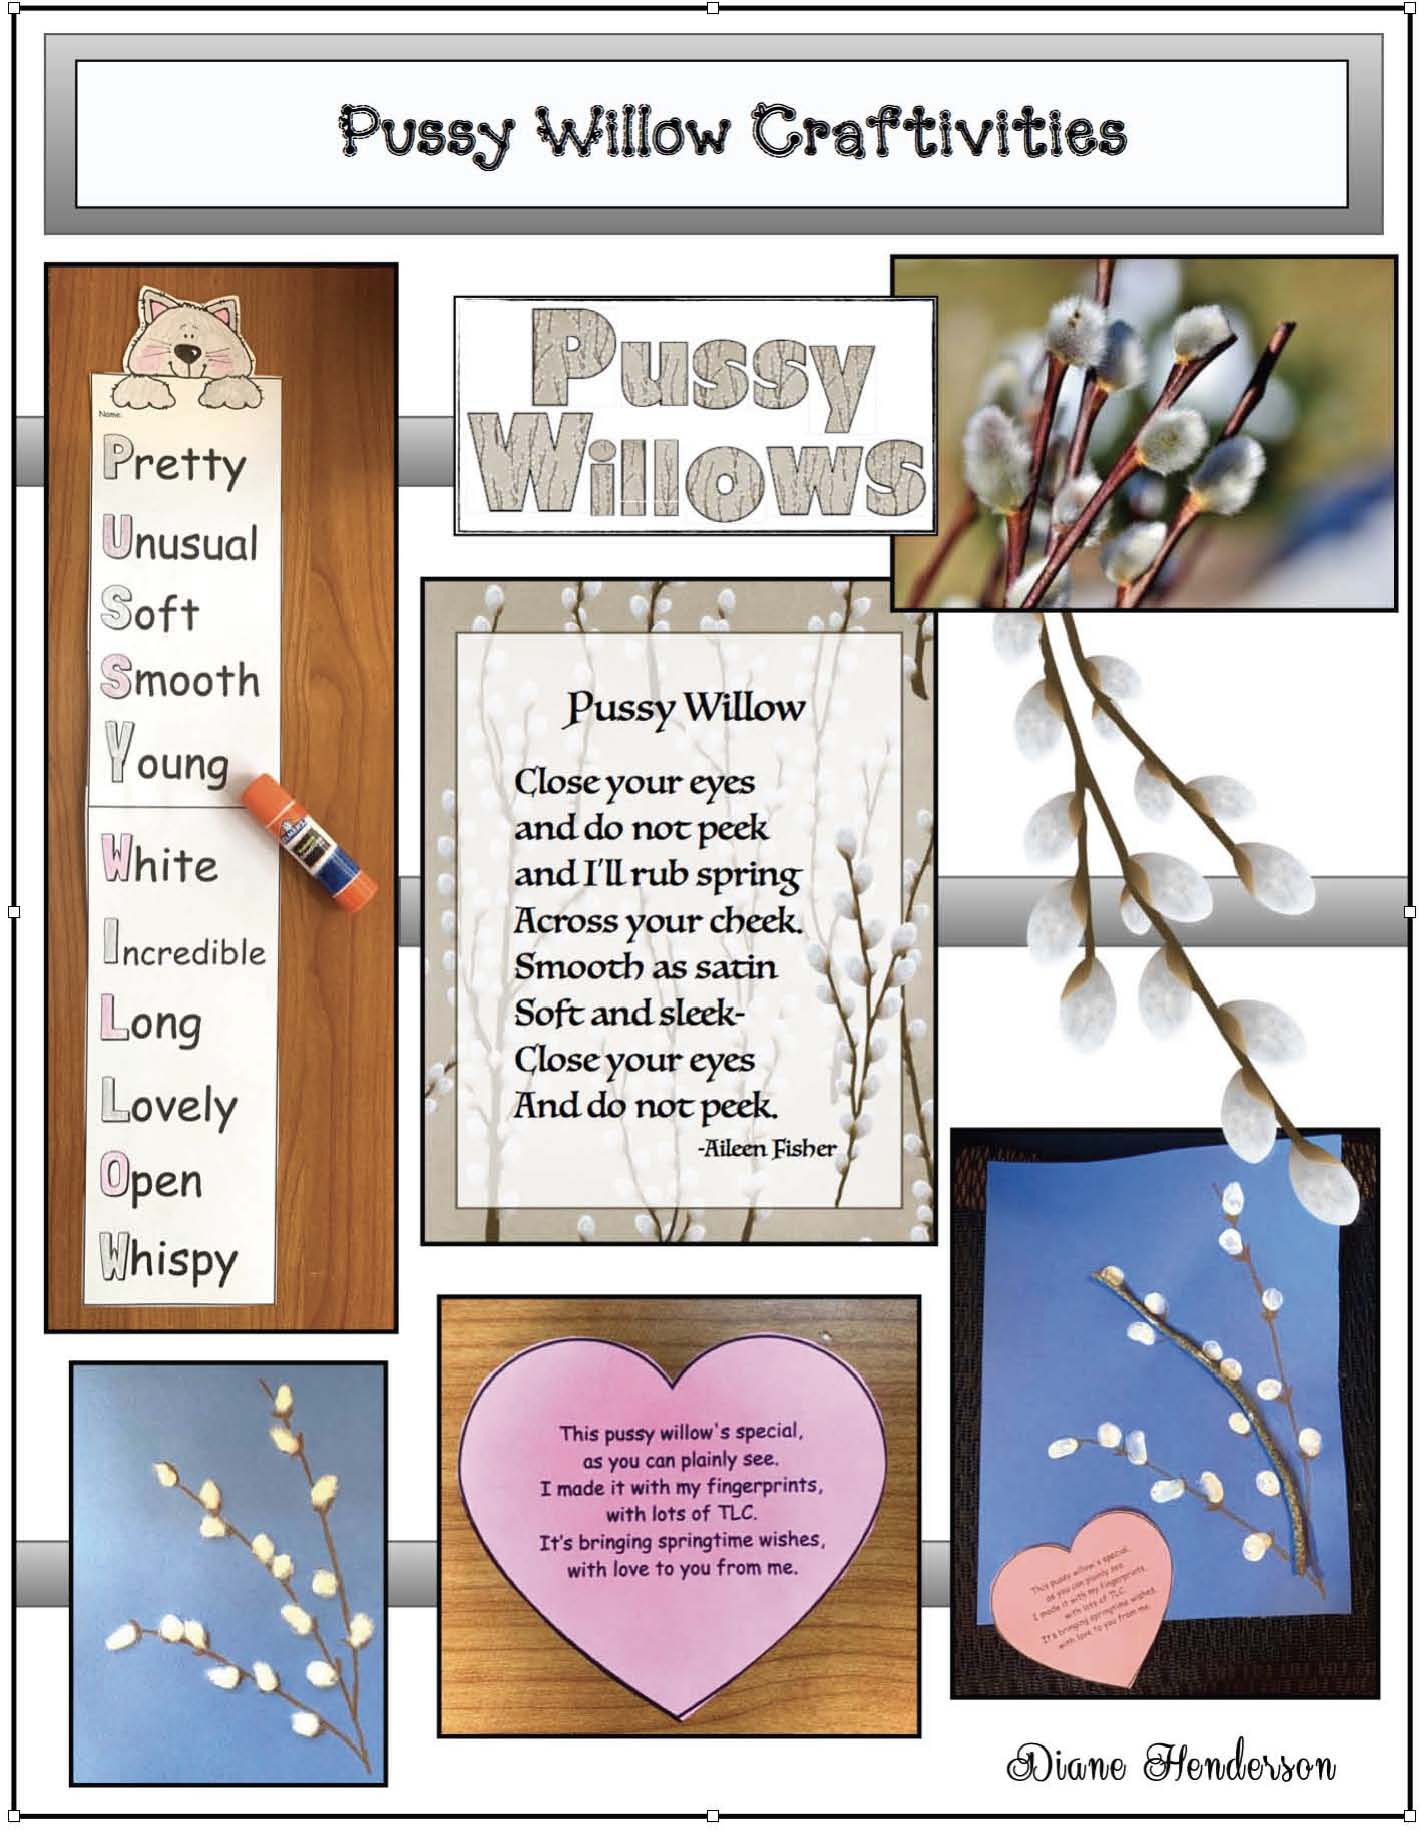 Pussy willow crafts, pussy willow poems, legend of the pussy willow, pussy willow activities, spring crafts for kids, keepsake crafts, fingerprint crafts